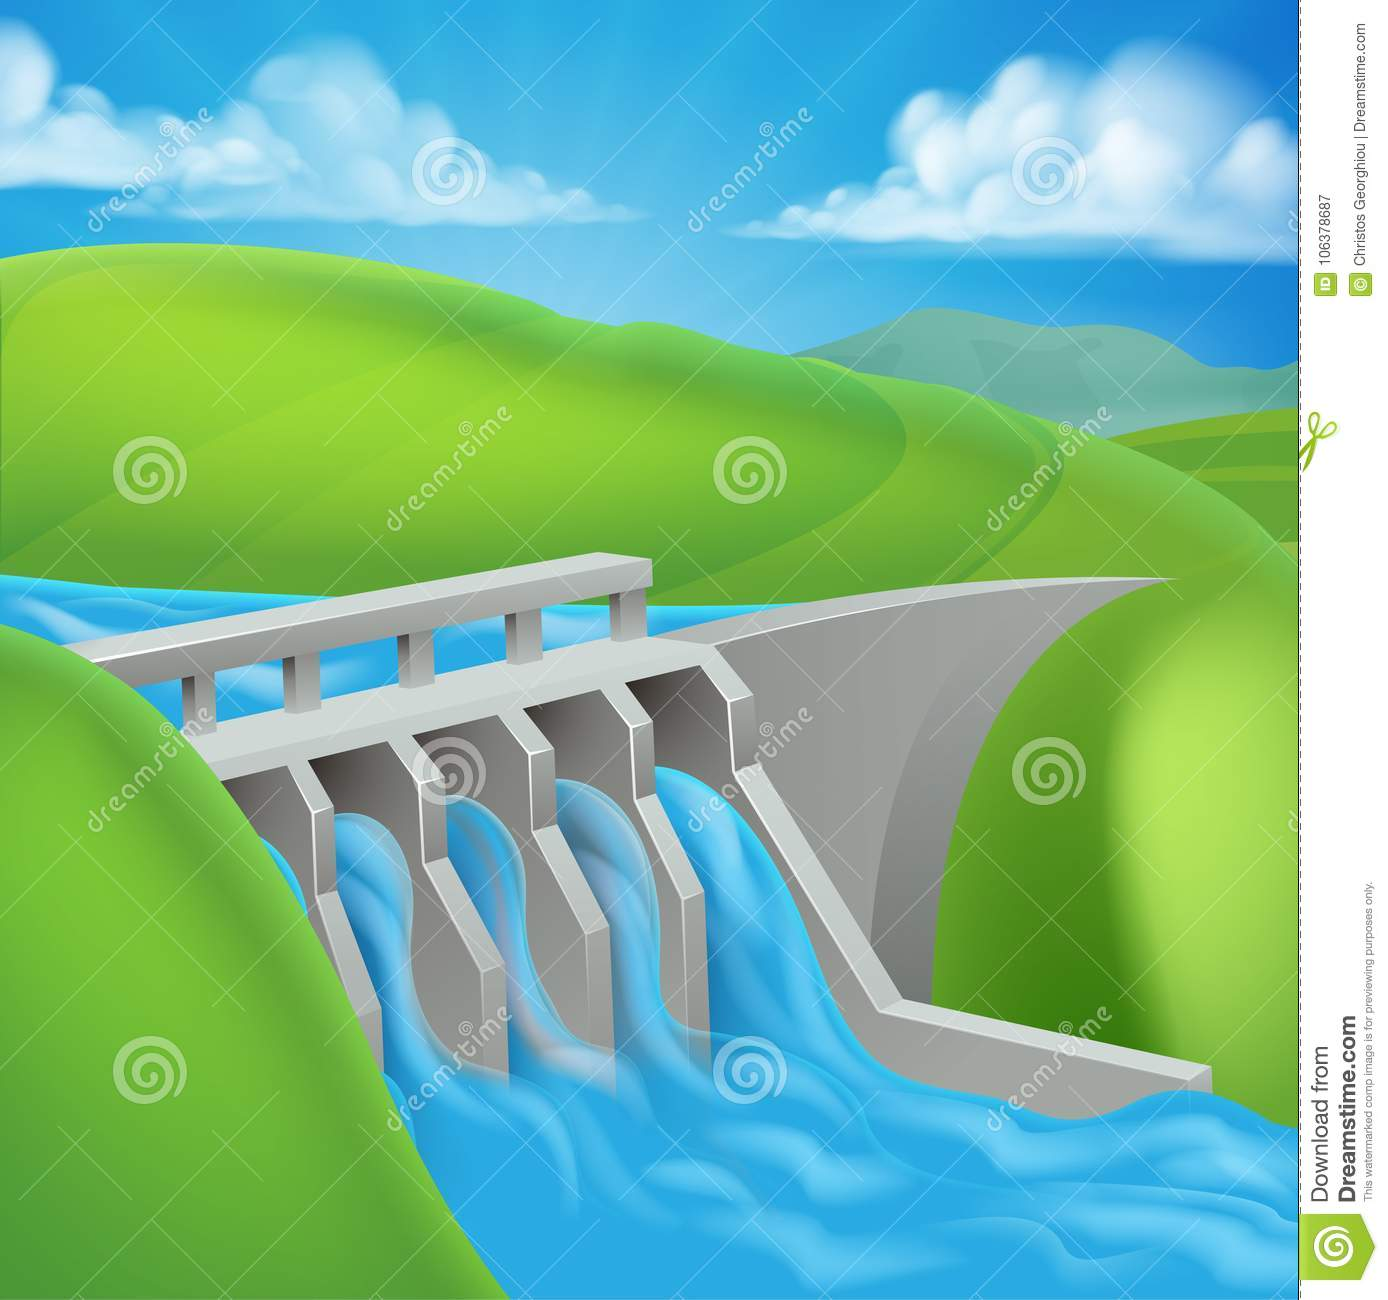 Hydroelectric Power Dam Generating Electricity